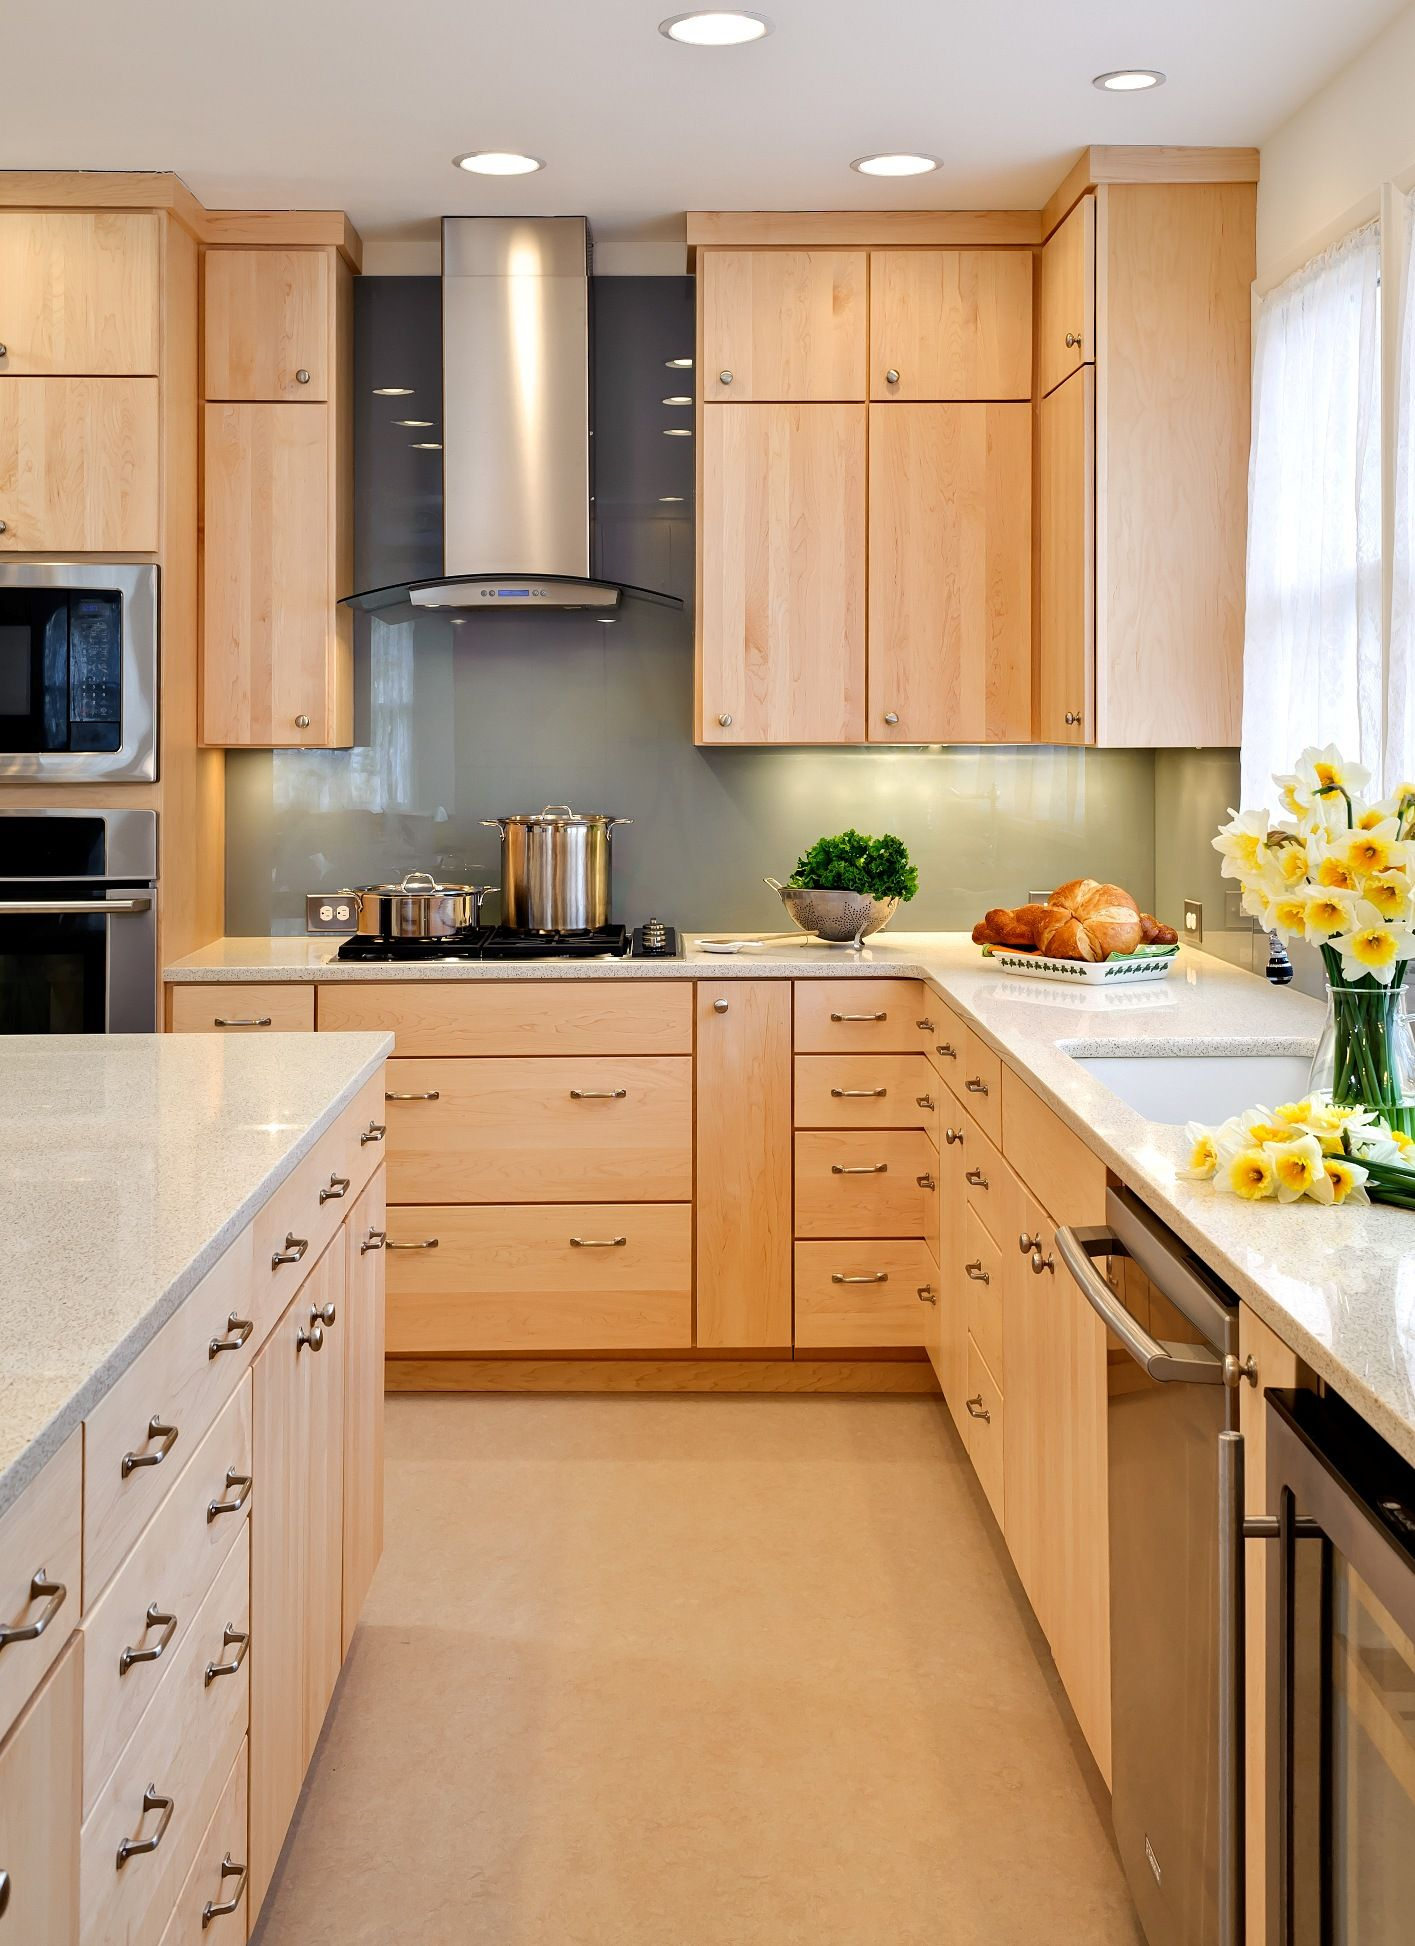 Kitchen kitchen color ideas with maple cabinets kitchen Kitchen colors with natural wood cabinets